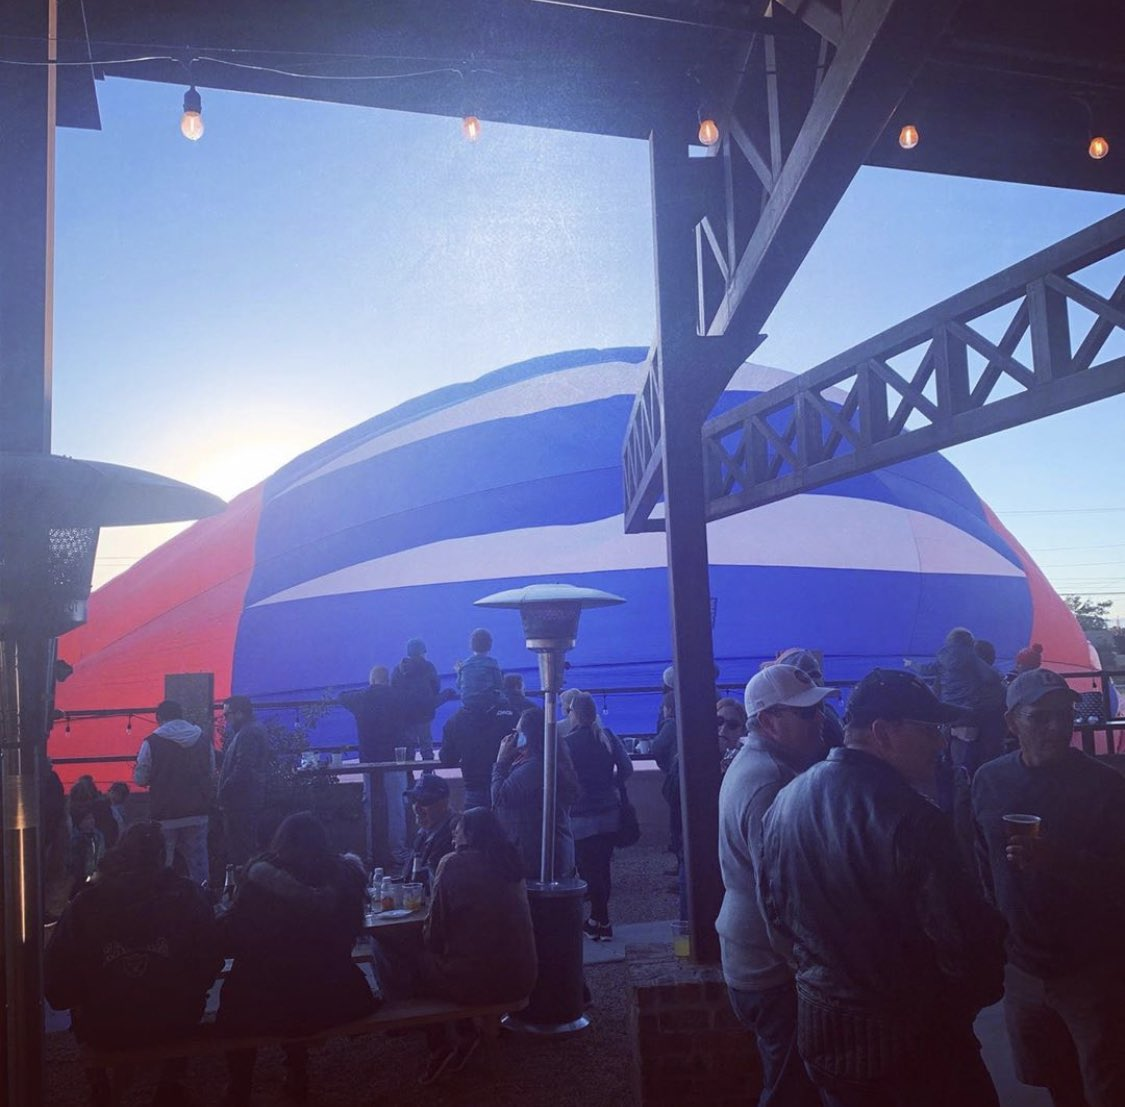 If absence makes the heart grow fonder, our hearts are bursting with ❤️ today on what would have been the first morning of our annual #BalloonsandBrews during #balloonfiesta. #festivalflashback of American Beauty's early morning landing at the taproom, 2019. #builttobrew https://t.co/MUQ0BaWMqG